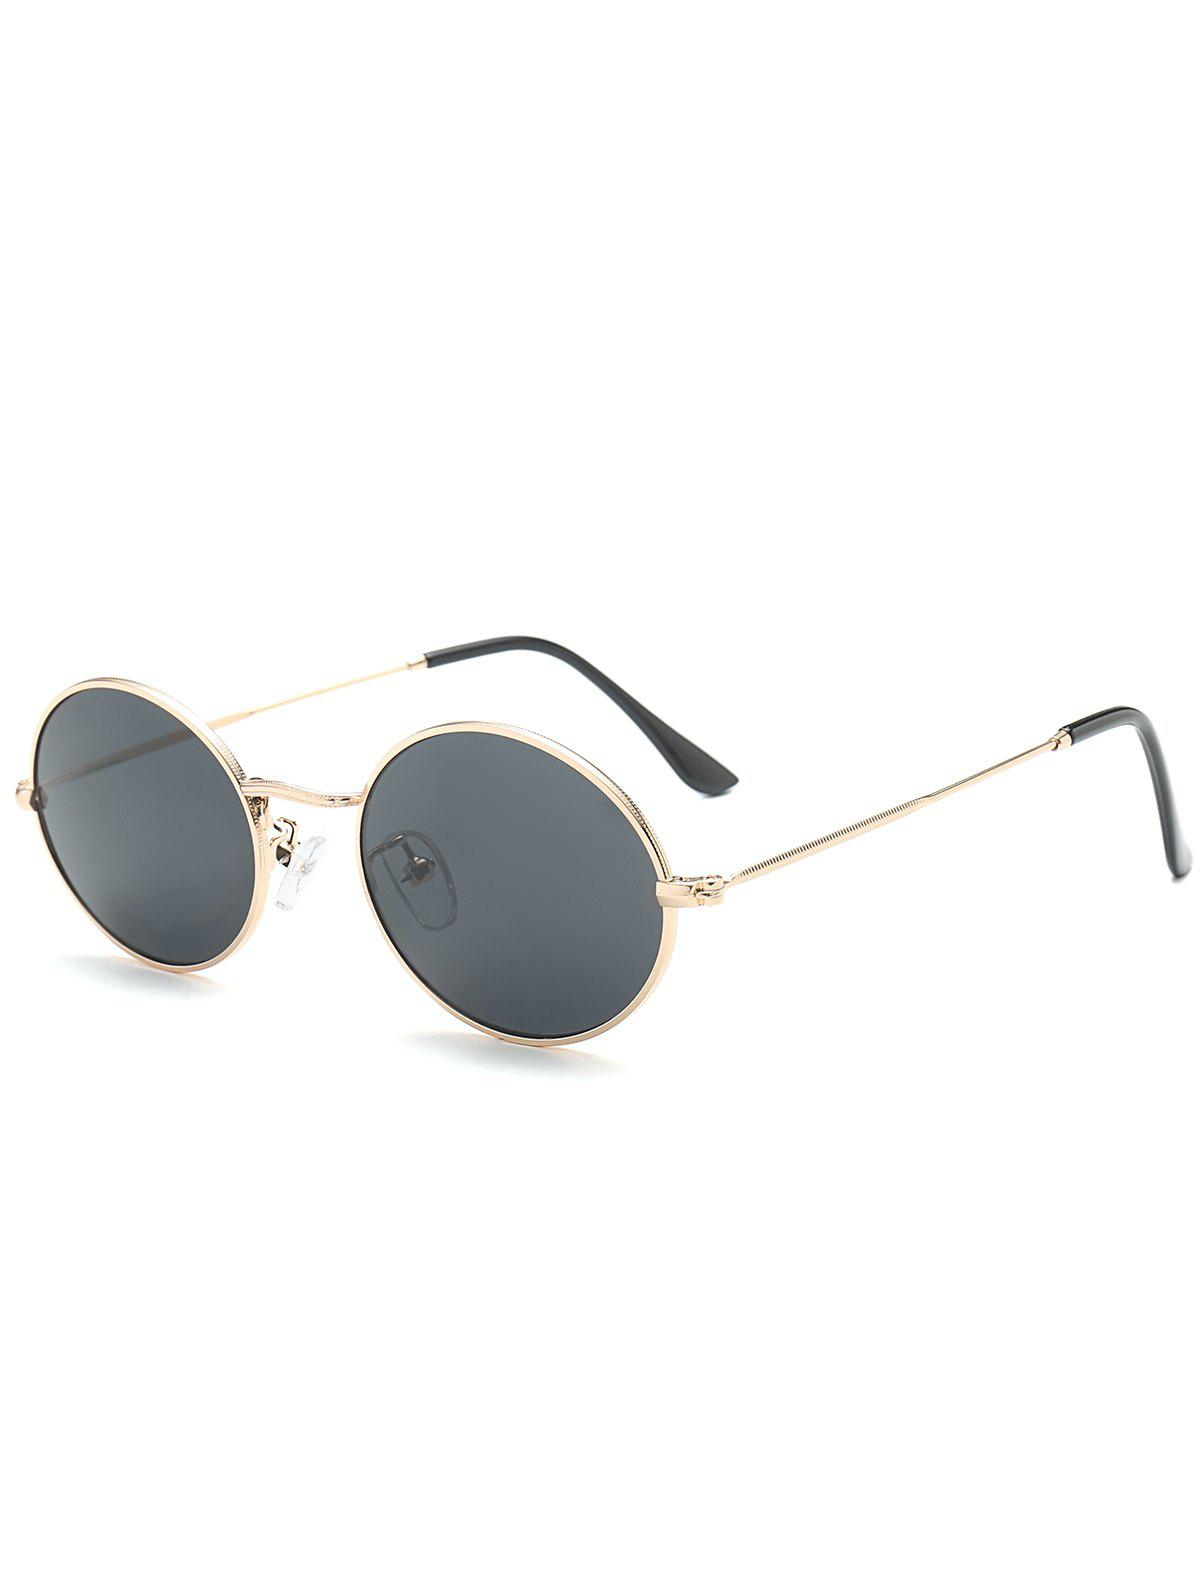 Oval Metal Frame Anti UV SunglassesACCESSORIES<br><br>Color: BLACK; Group: Adult; Gender: For Women; Style: Fashion; Shape: Oval; Lens material: Resin; Frame material: Other; Frame Color: Gold; Lens height: 4.2CM; Lens width: 5.1CM; Temple Length: 14.0CM; Nose: 1.6CM; Frame Length: 13.0CM; Weight: 0.0900kg; Package Contents: 1 x Sunglasses;